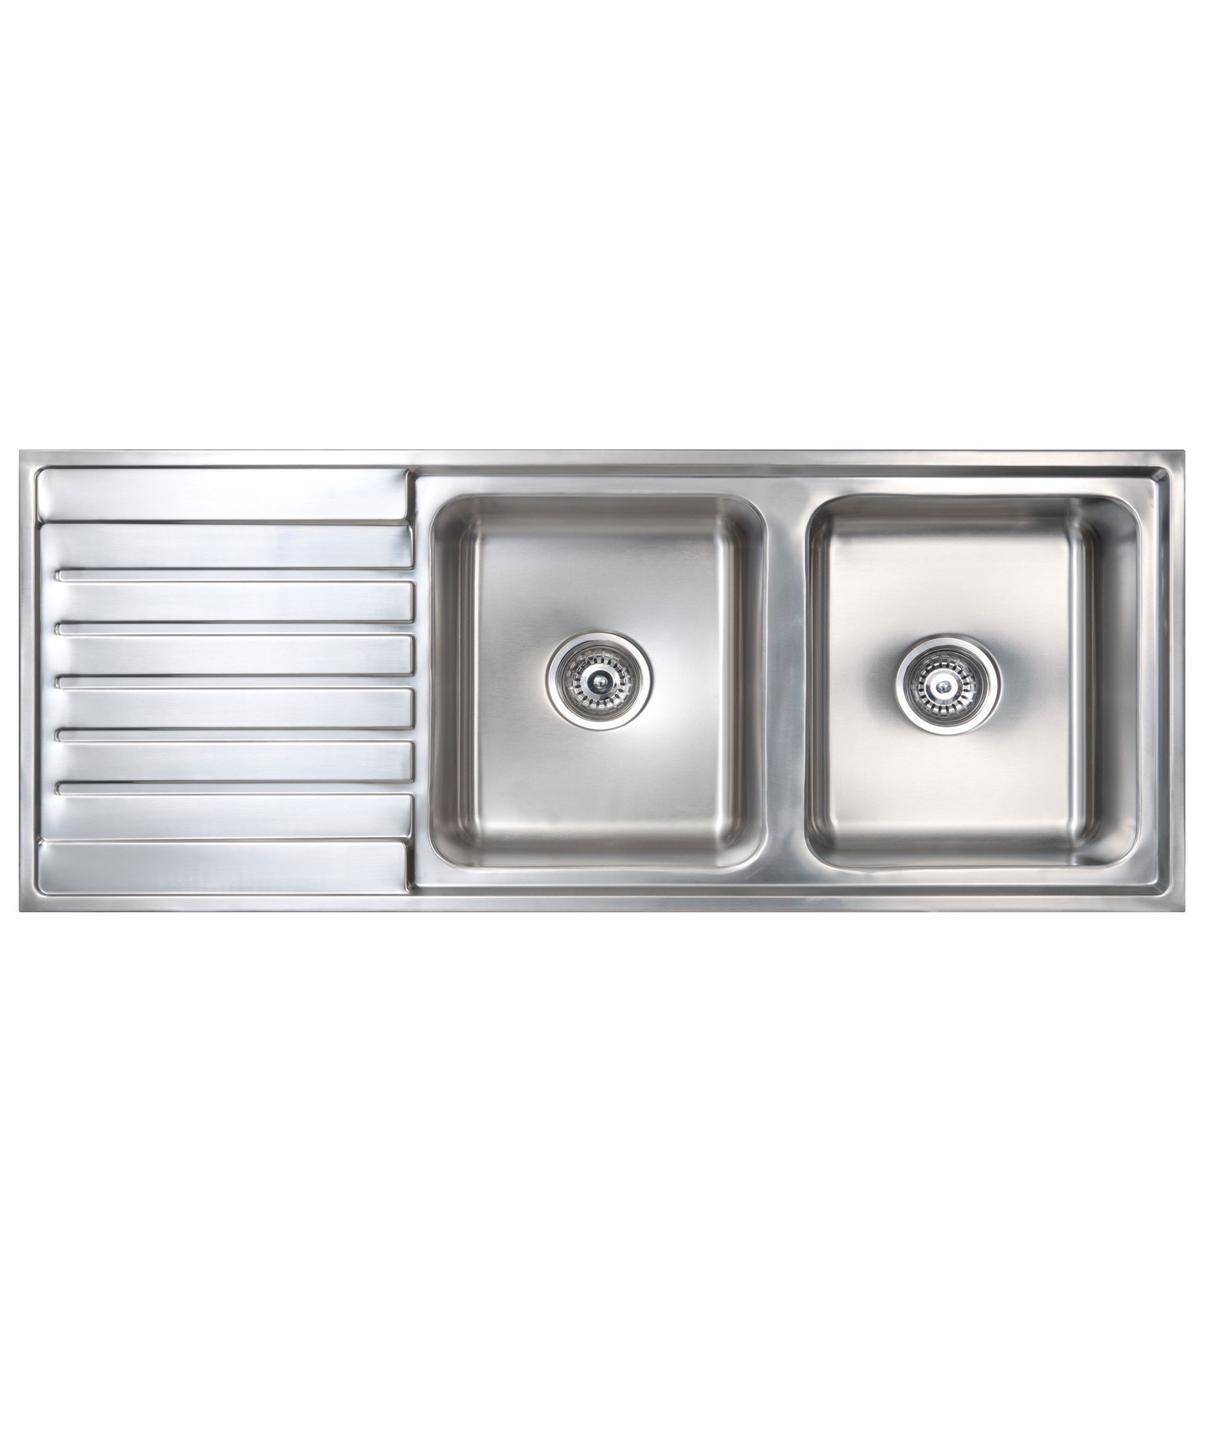 SEIMA KUBIC DEEP 750 KITCHEN SINK